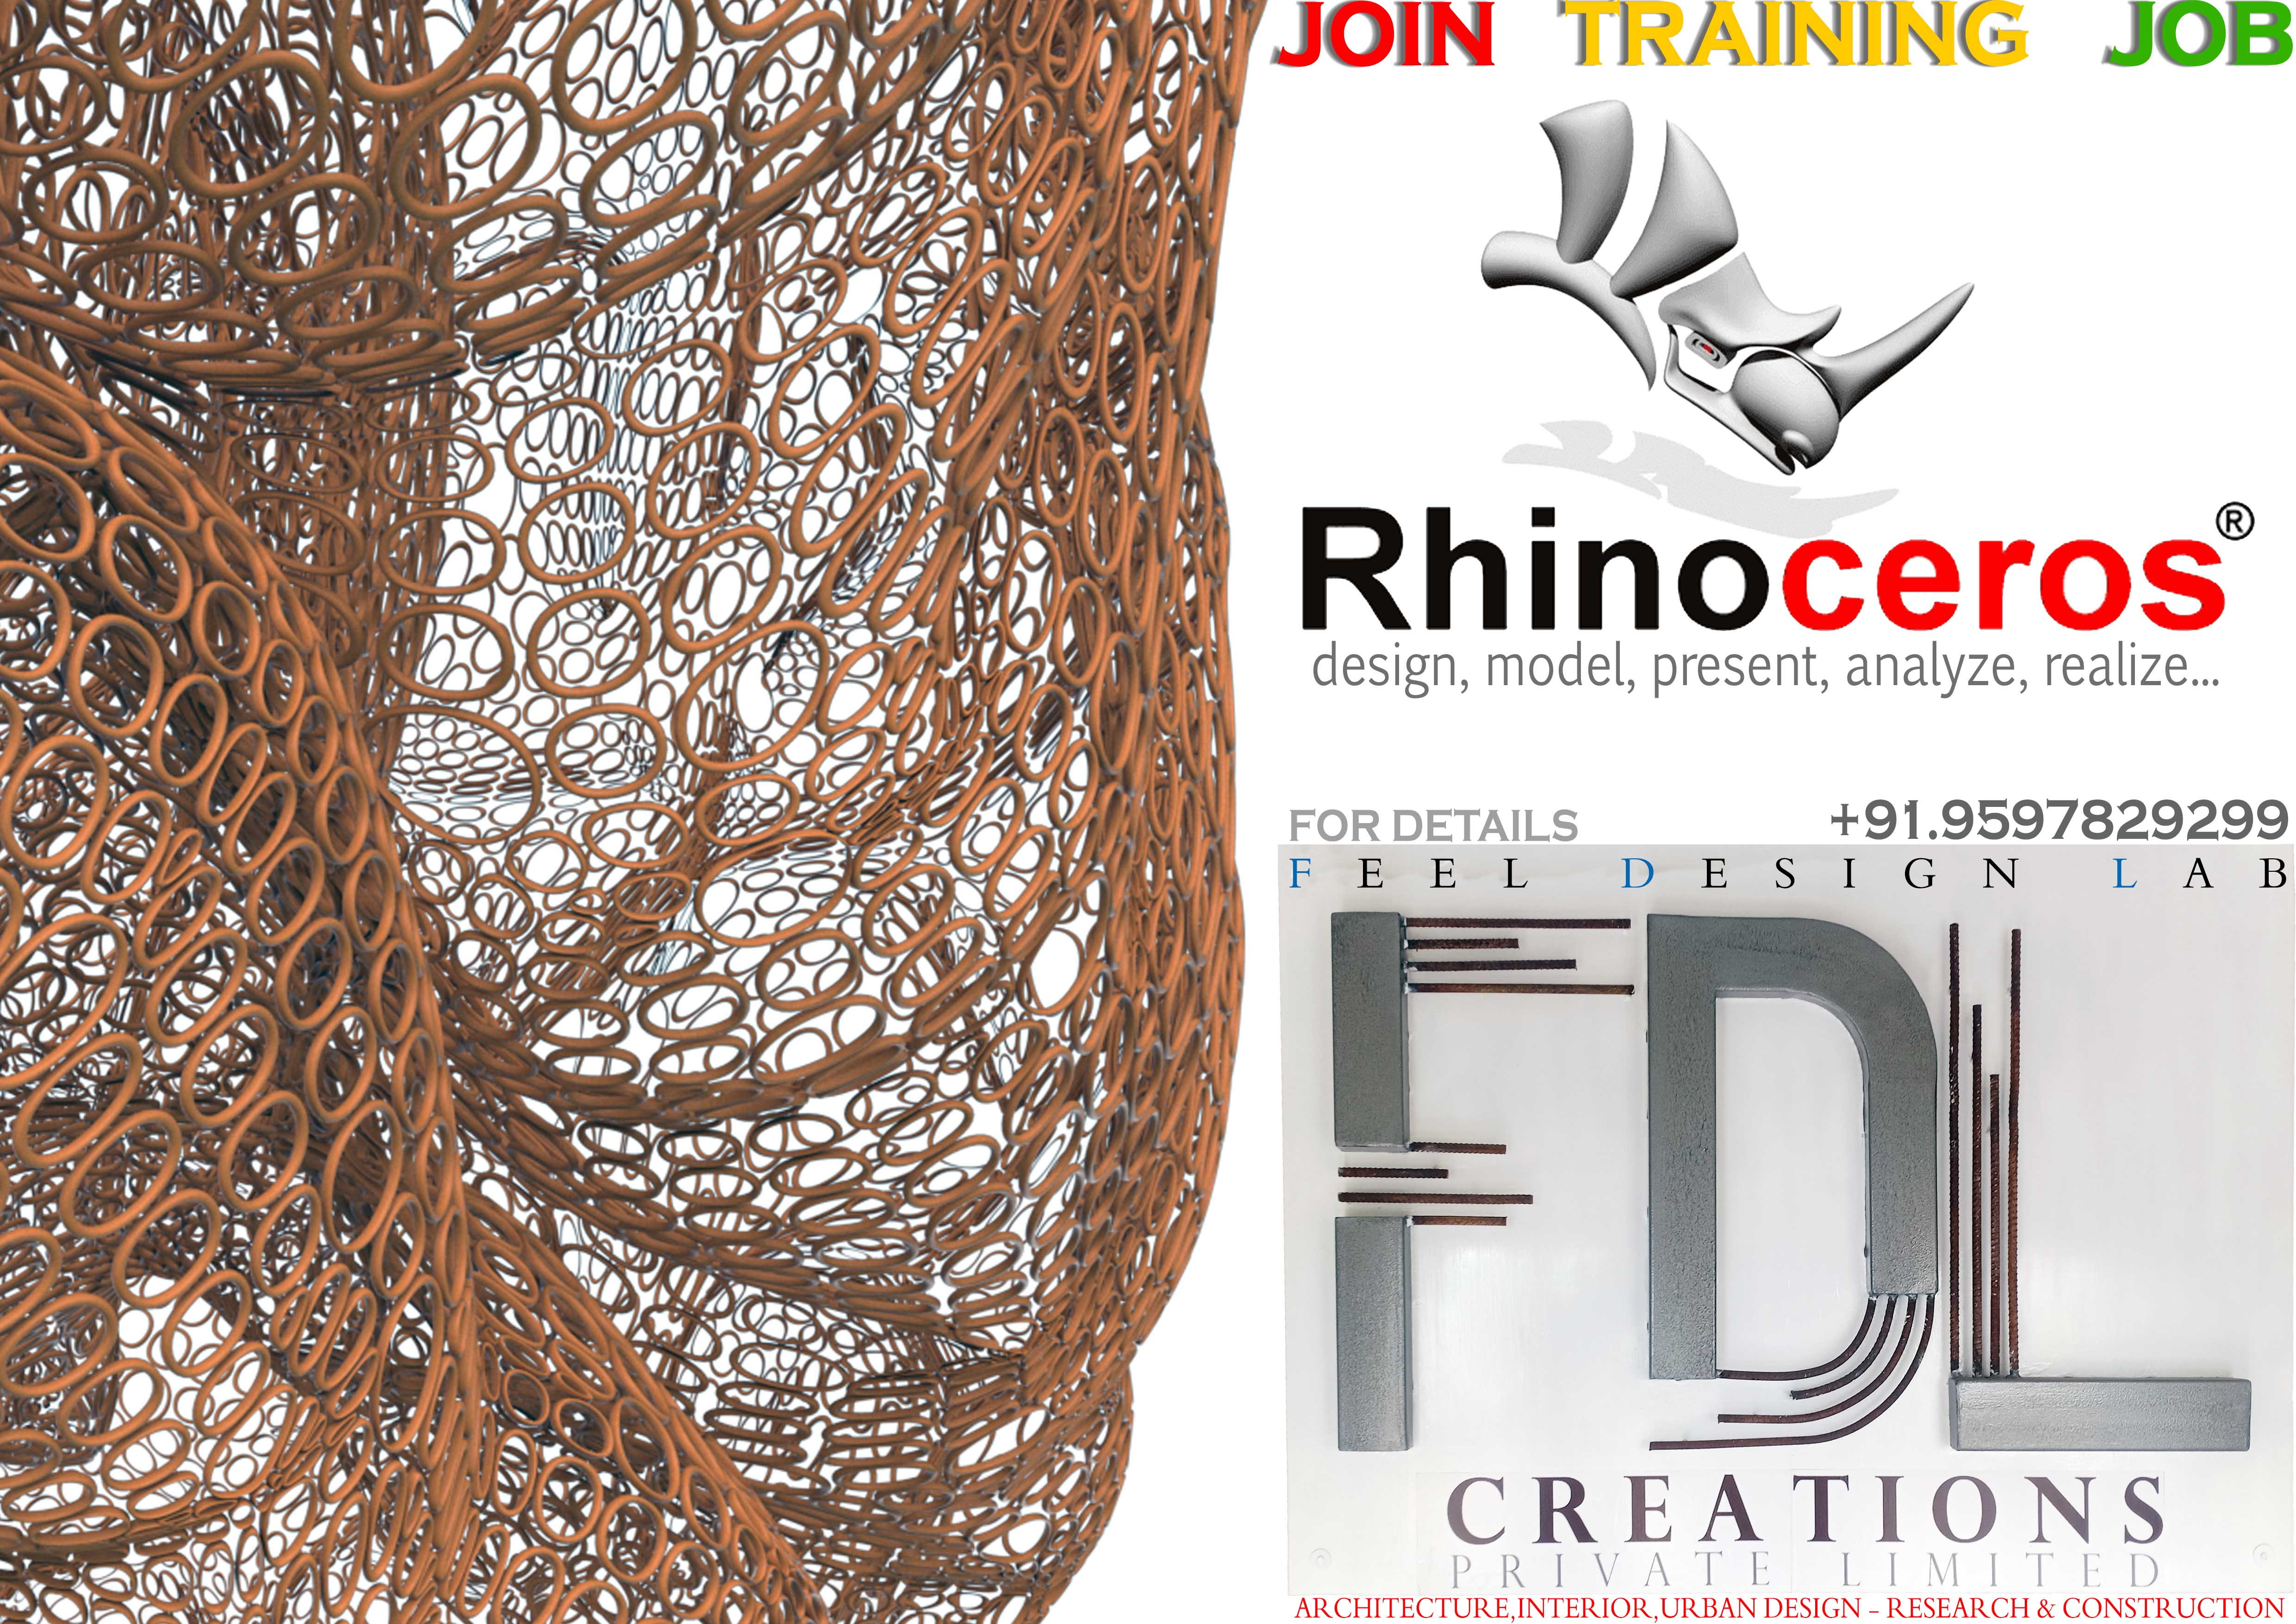 RHINOCEROUS 3D COURSE TRA